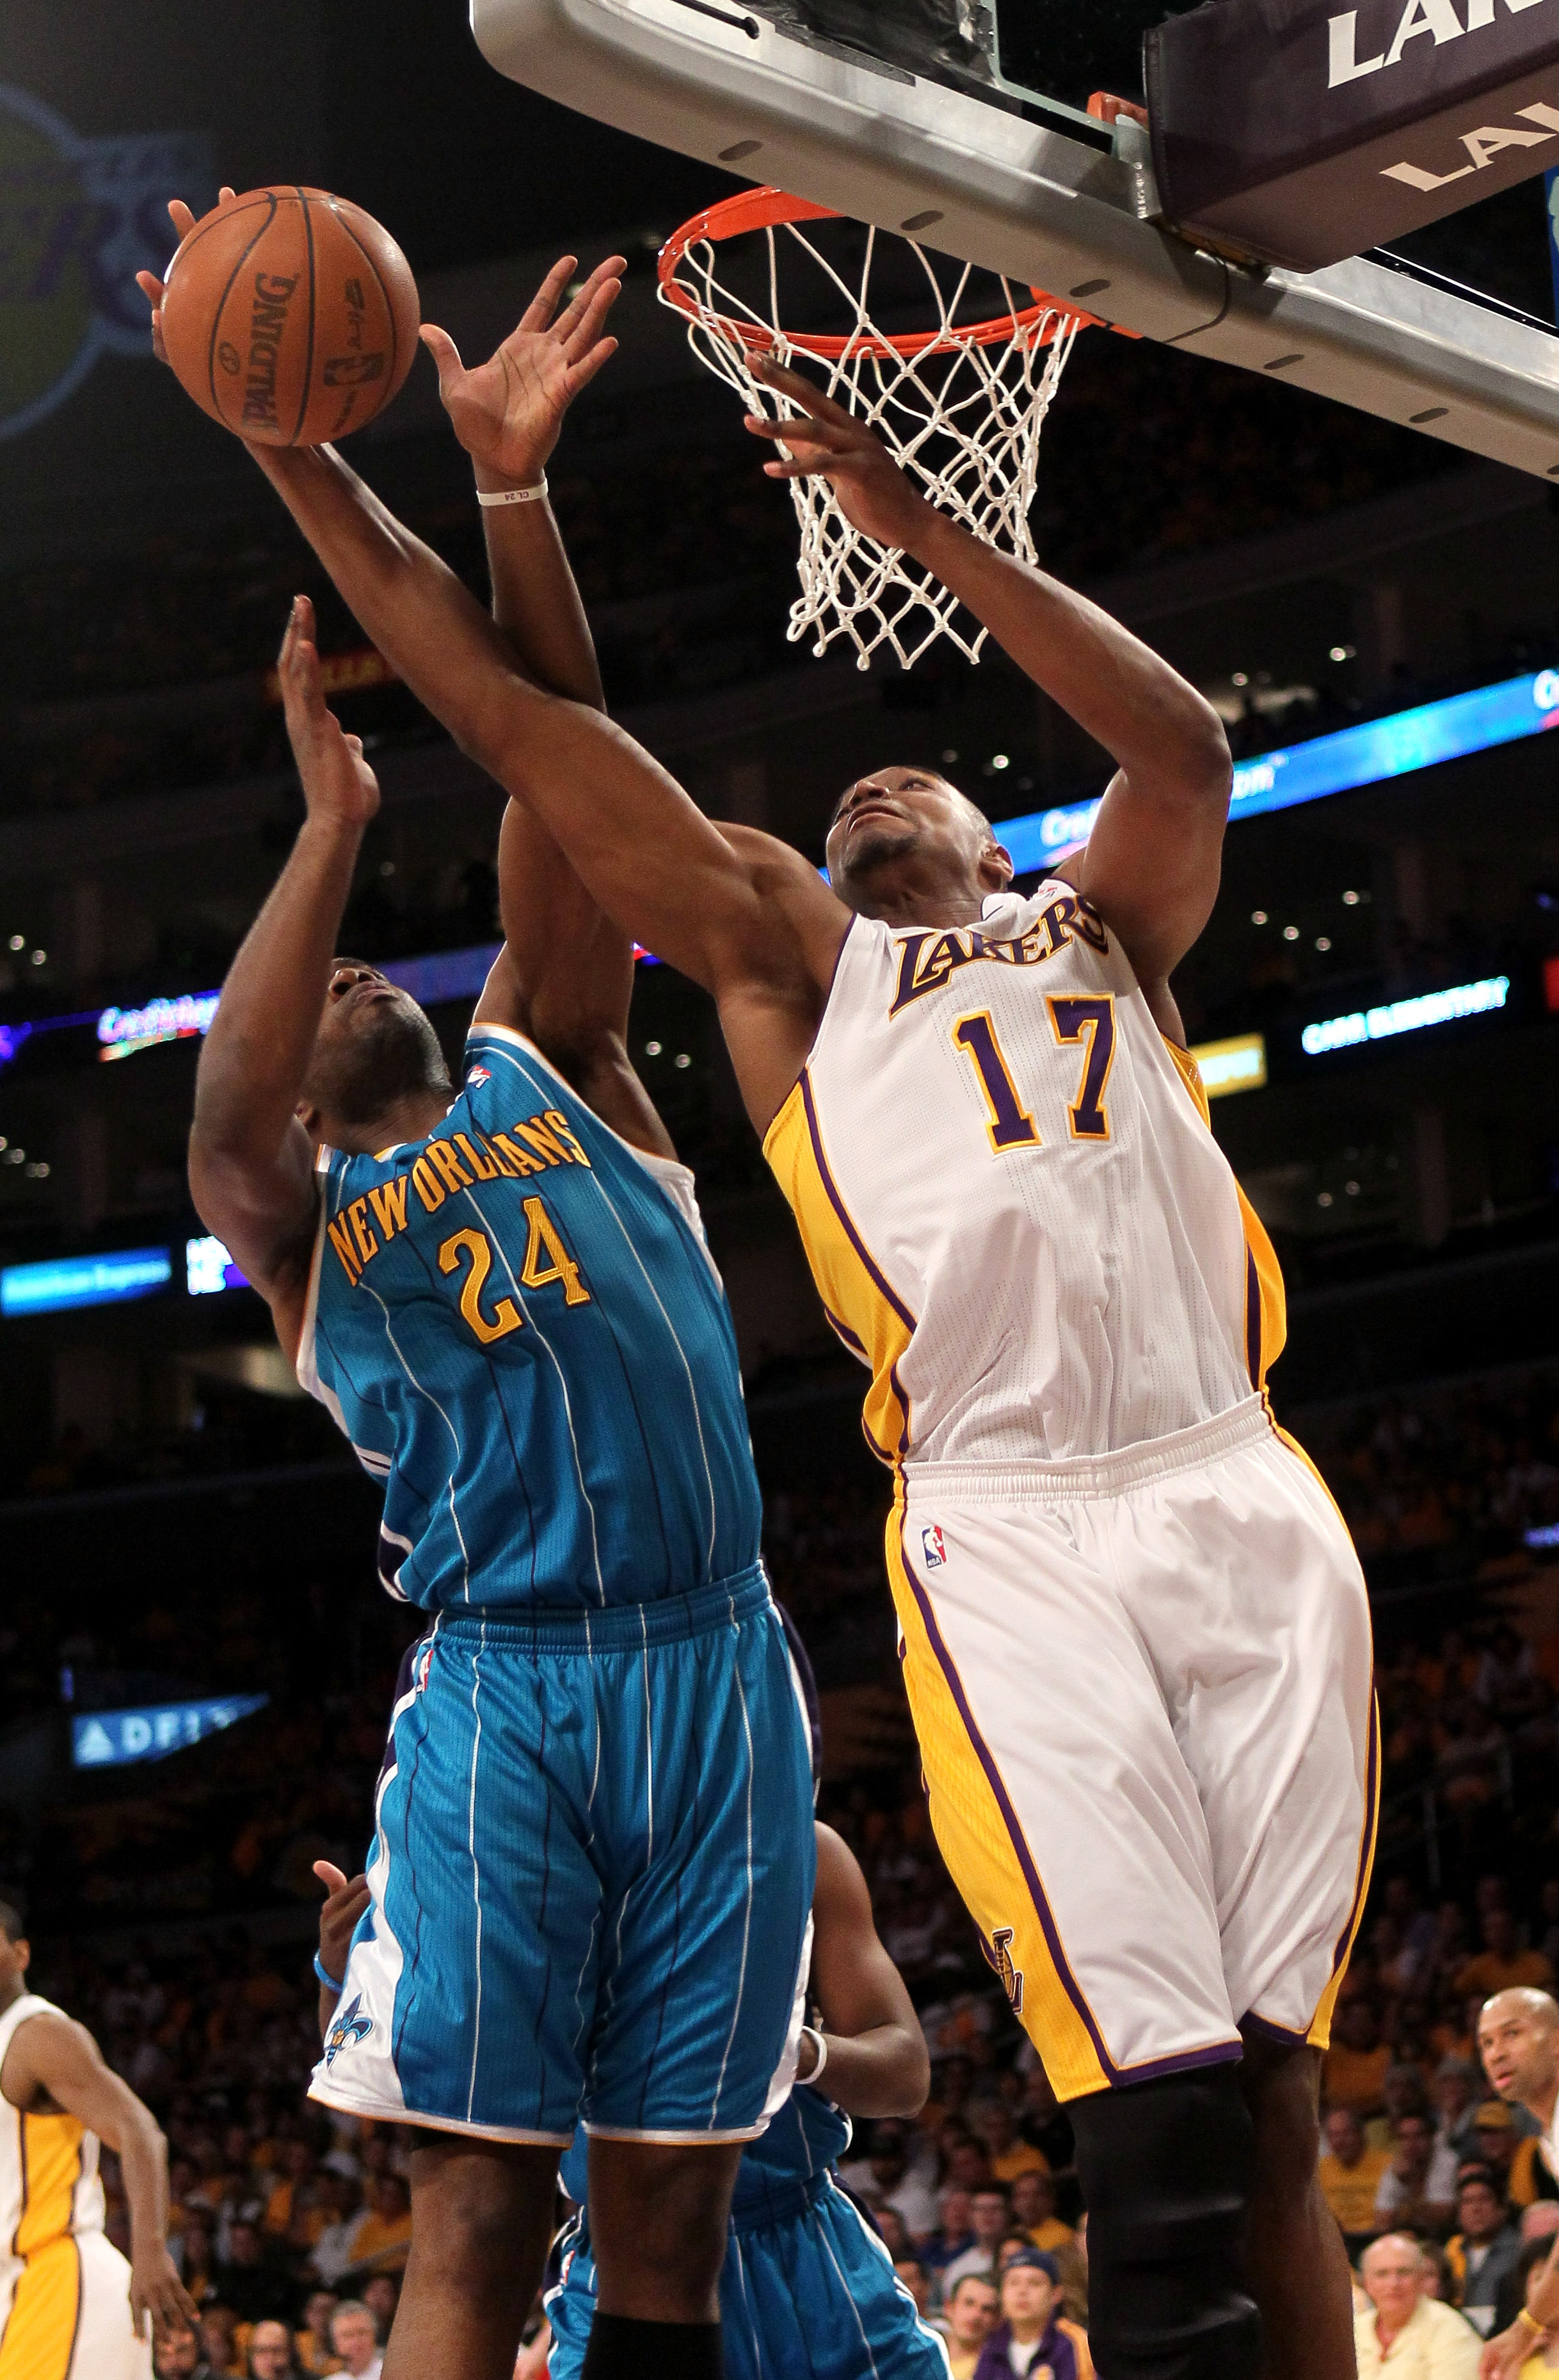 LOS ANGELES, CA - APRIL 17:  Andrew Bynum #17 of the Los Angeles Lakers grabs a rebound from carl Landry #24 of the New Orleans Hornets in Game One of the Western Conference Quarterfinals in the 2011 NBA Playoffs on April 17, 2011 at Staples Center in Los